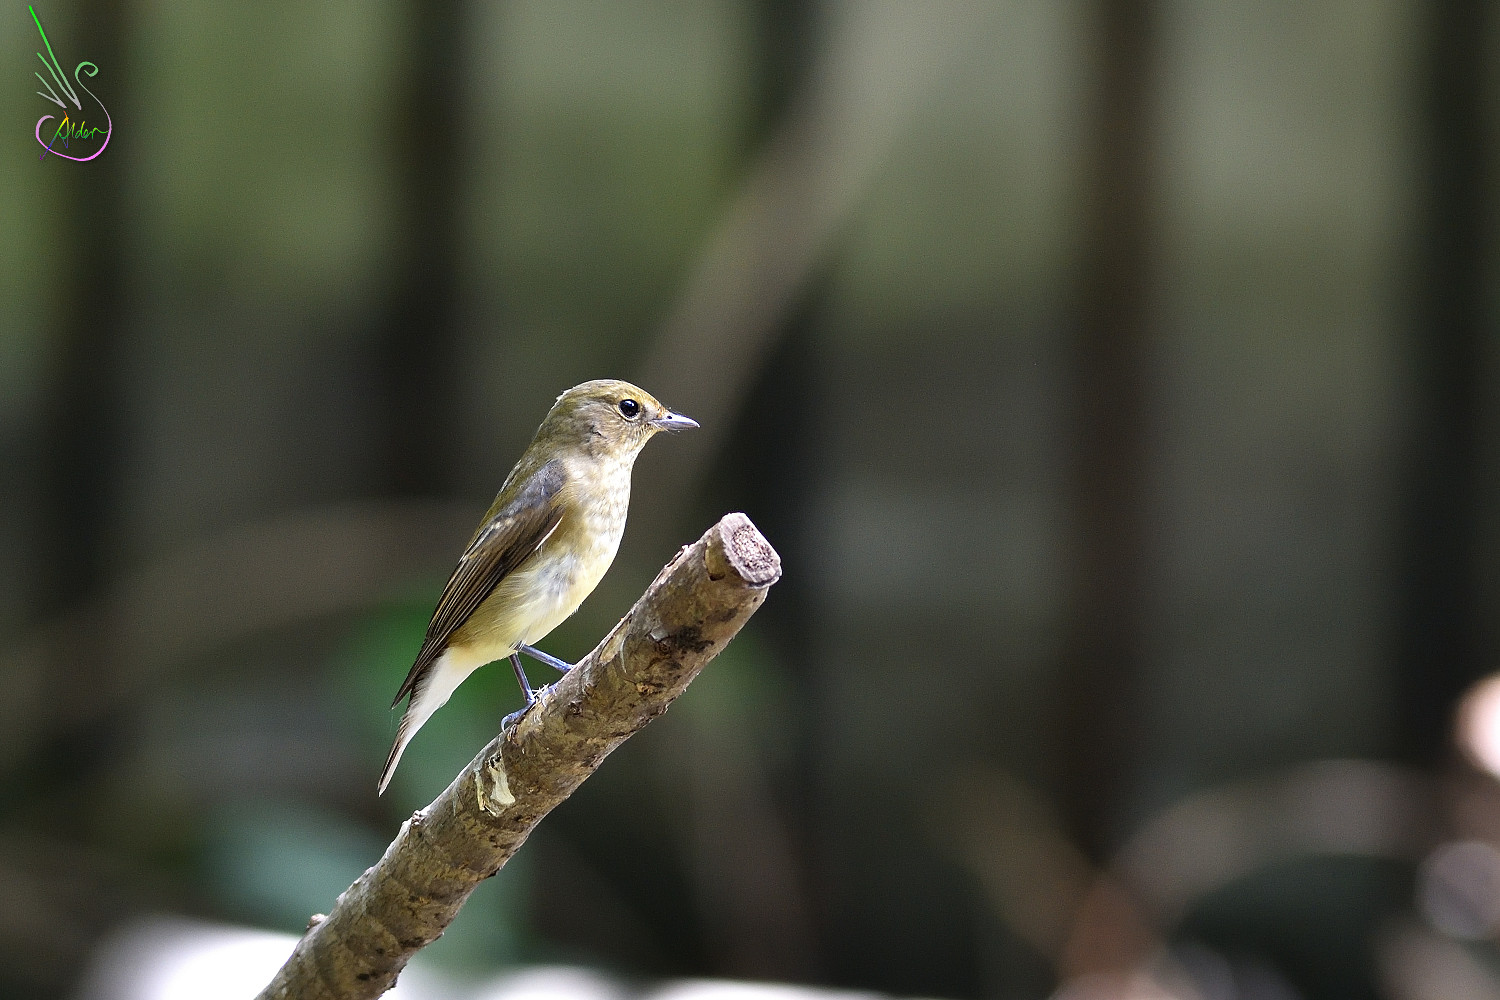 Narcissus_Flycatcher_8022